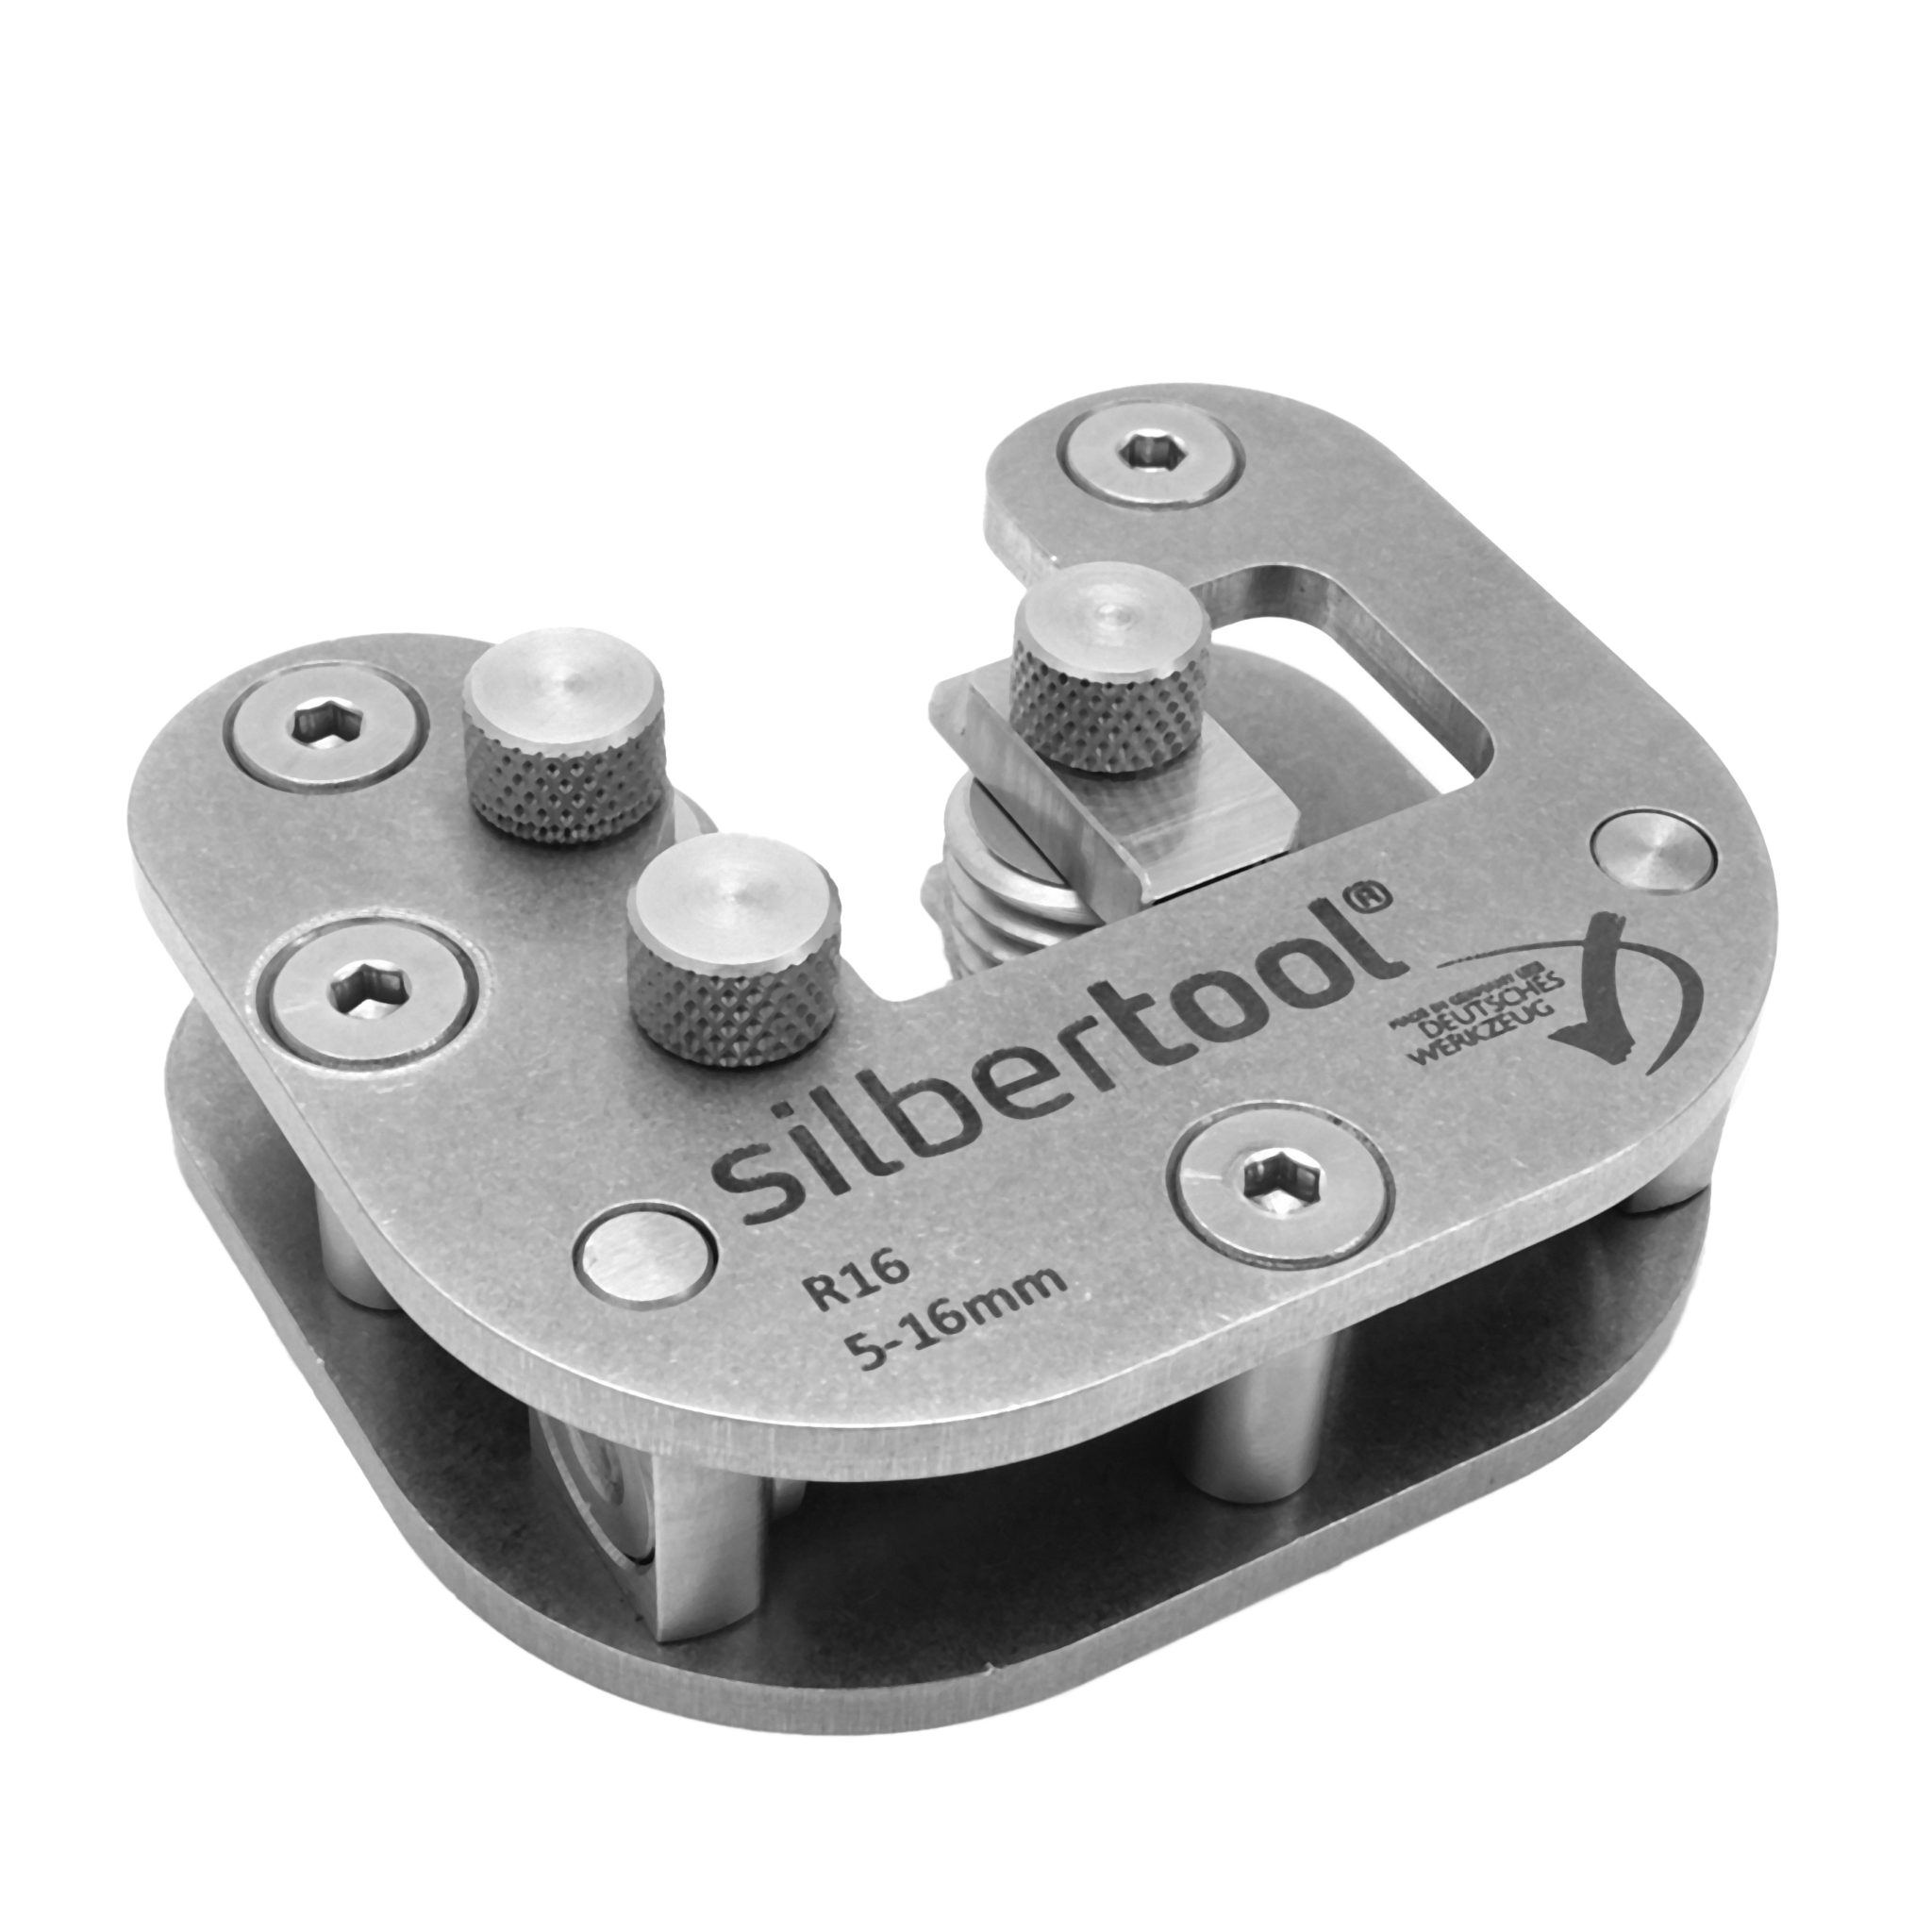 Silbertool R16